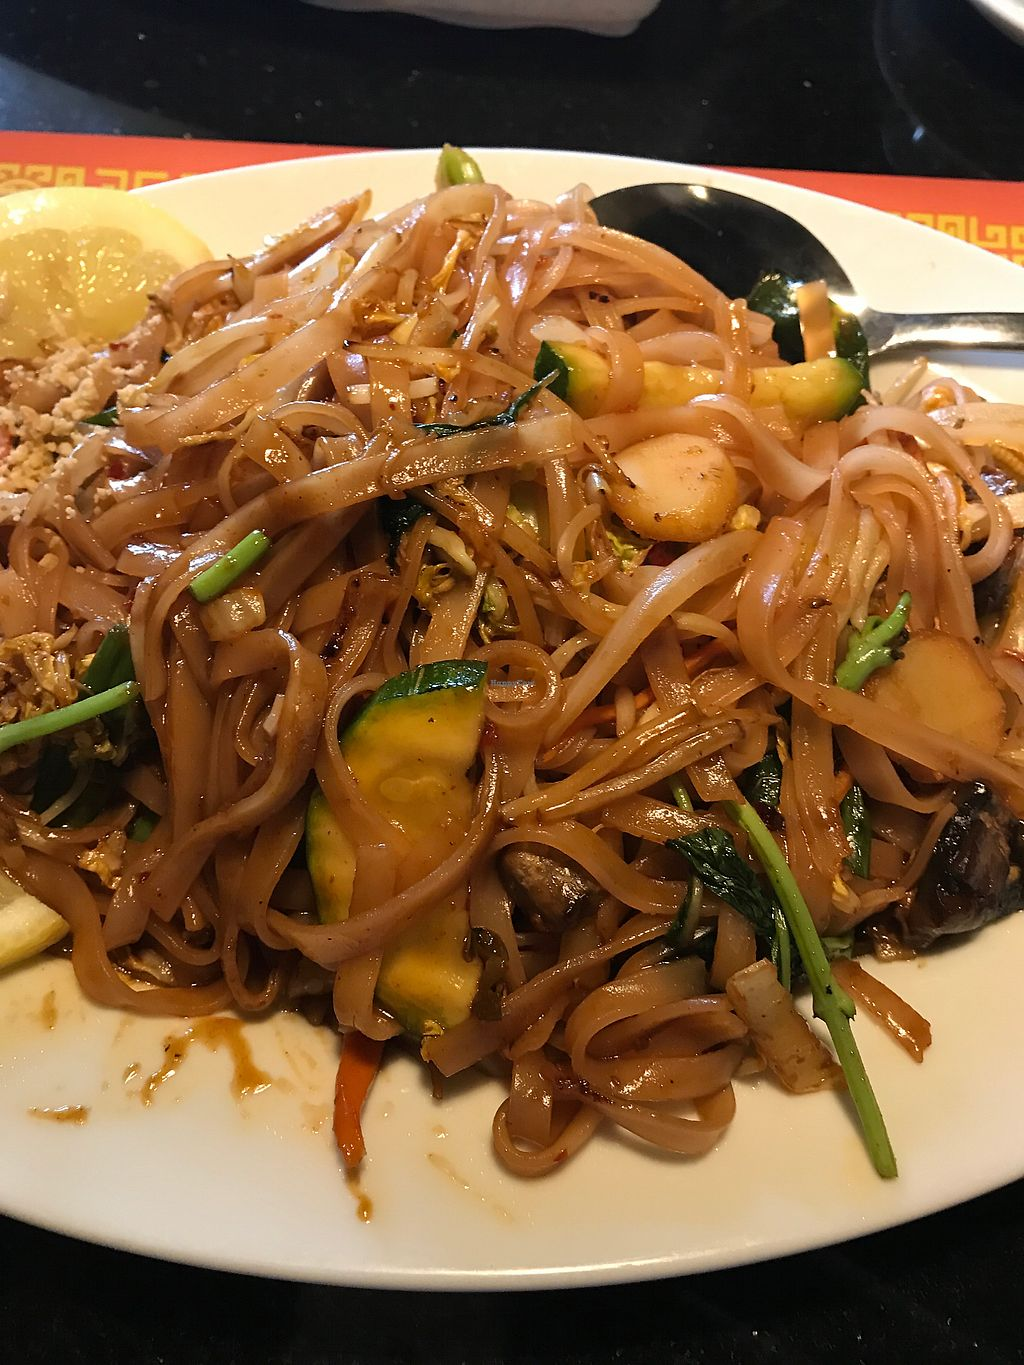 """Photo of Chopstix Asian Bistro  by <a href=""""/members/profile/MyGreenTongue"""">MyGreenTongue</a> <br/>pad thai  <br/> July 3, 2017  - <a href='/contact/abuse/image/29524/276207'>Report</a>"""